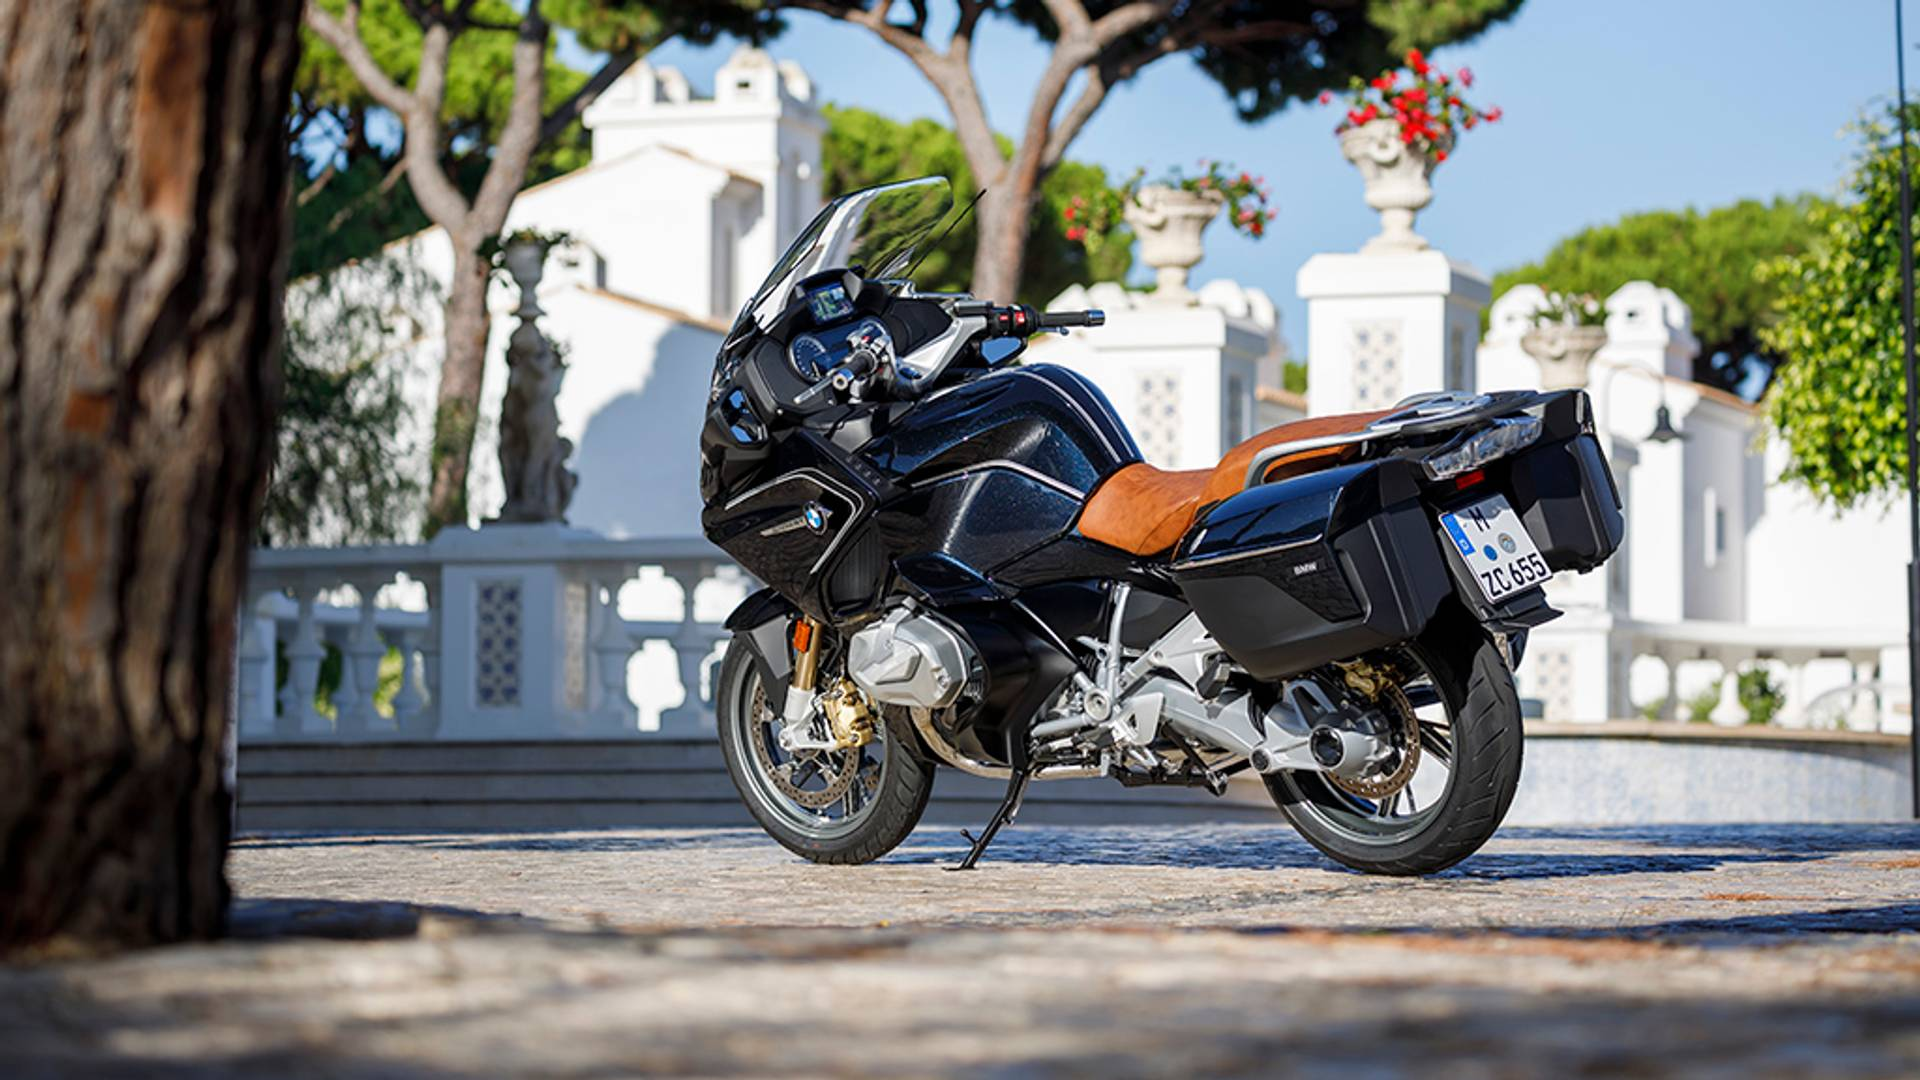 2019-bmw-r1250rt-2 Noul BMW R 1250 GS si RT sunt prezentate in sfarsit in 'carne si oase'